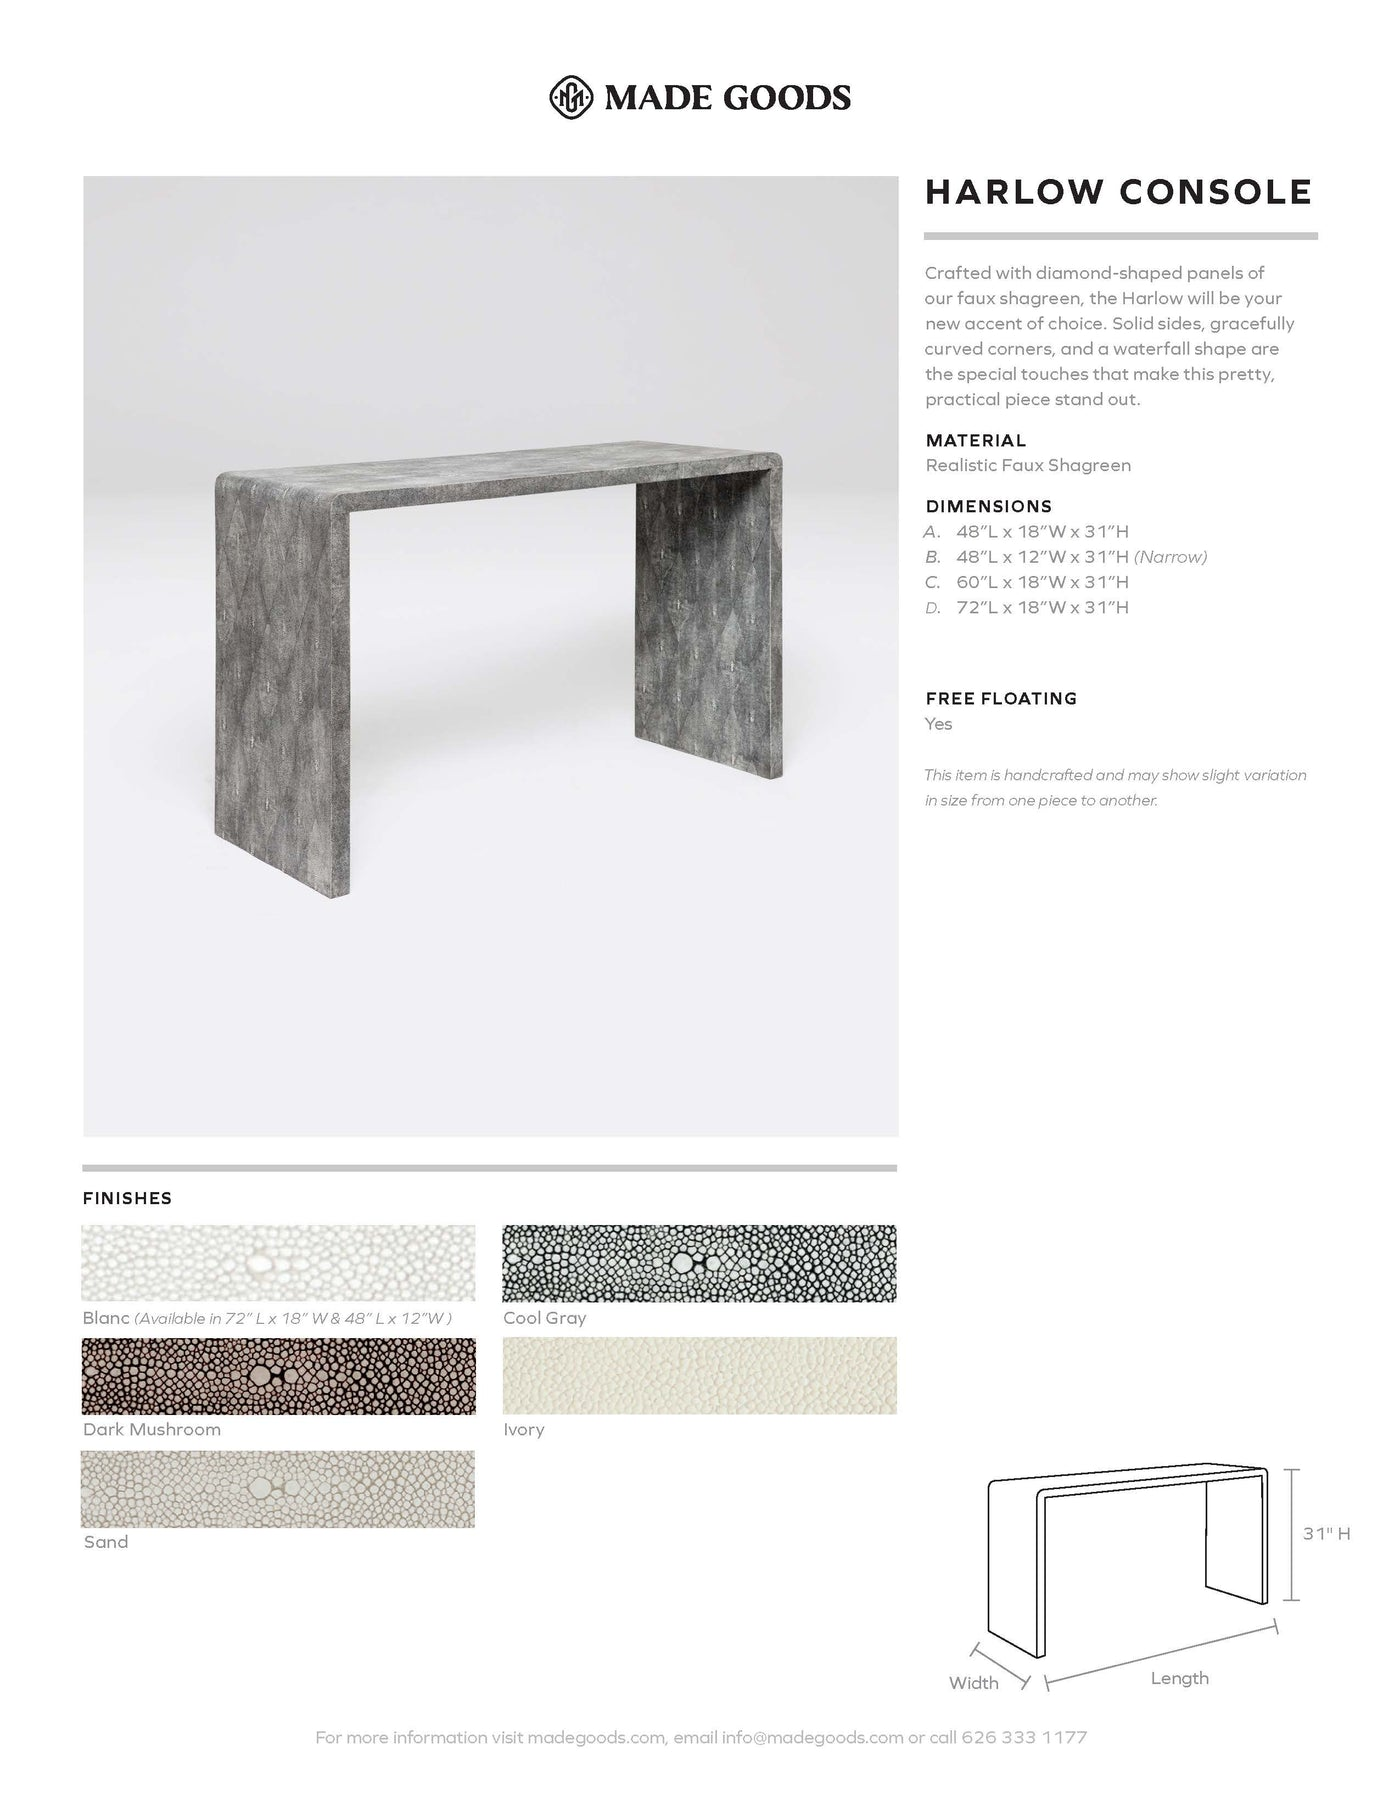 Made Goods Harlow Console Tearsheet